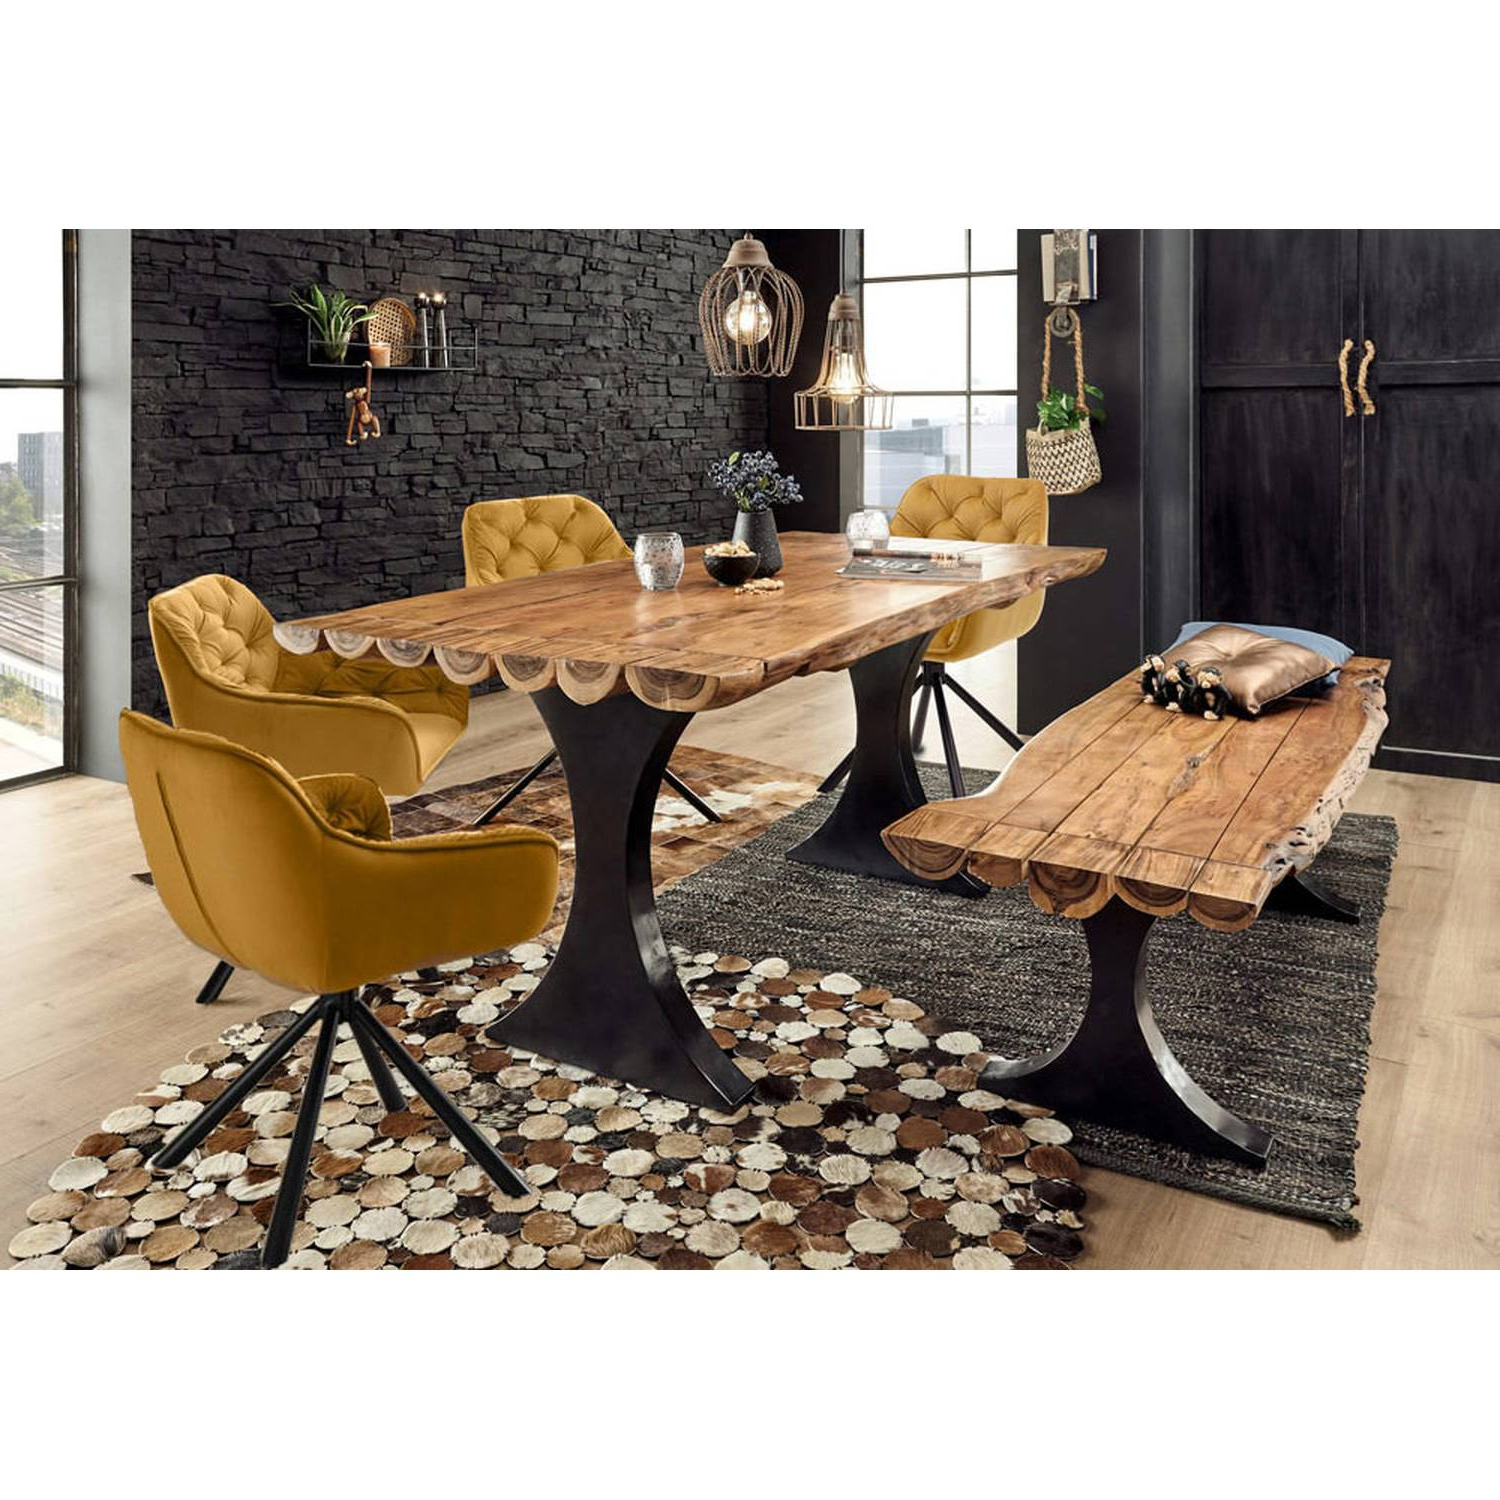 Popel Armchairs Inside Most Recent Solid Wood Dining Set Amsterdam 119 Made Of Halved Logs, Frames Black, Armchairs Mustard Yellow With Chesterfield Quilting (View 16 of 20)